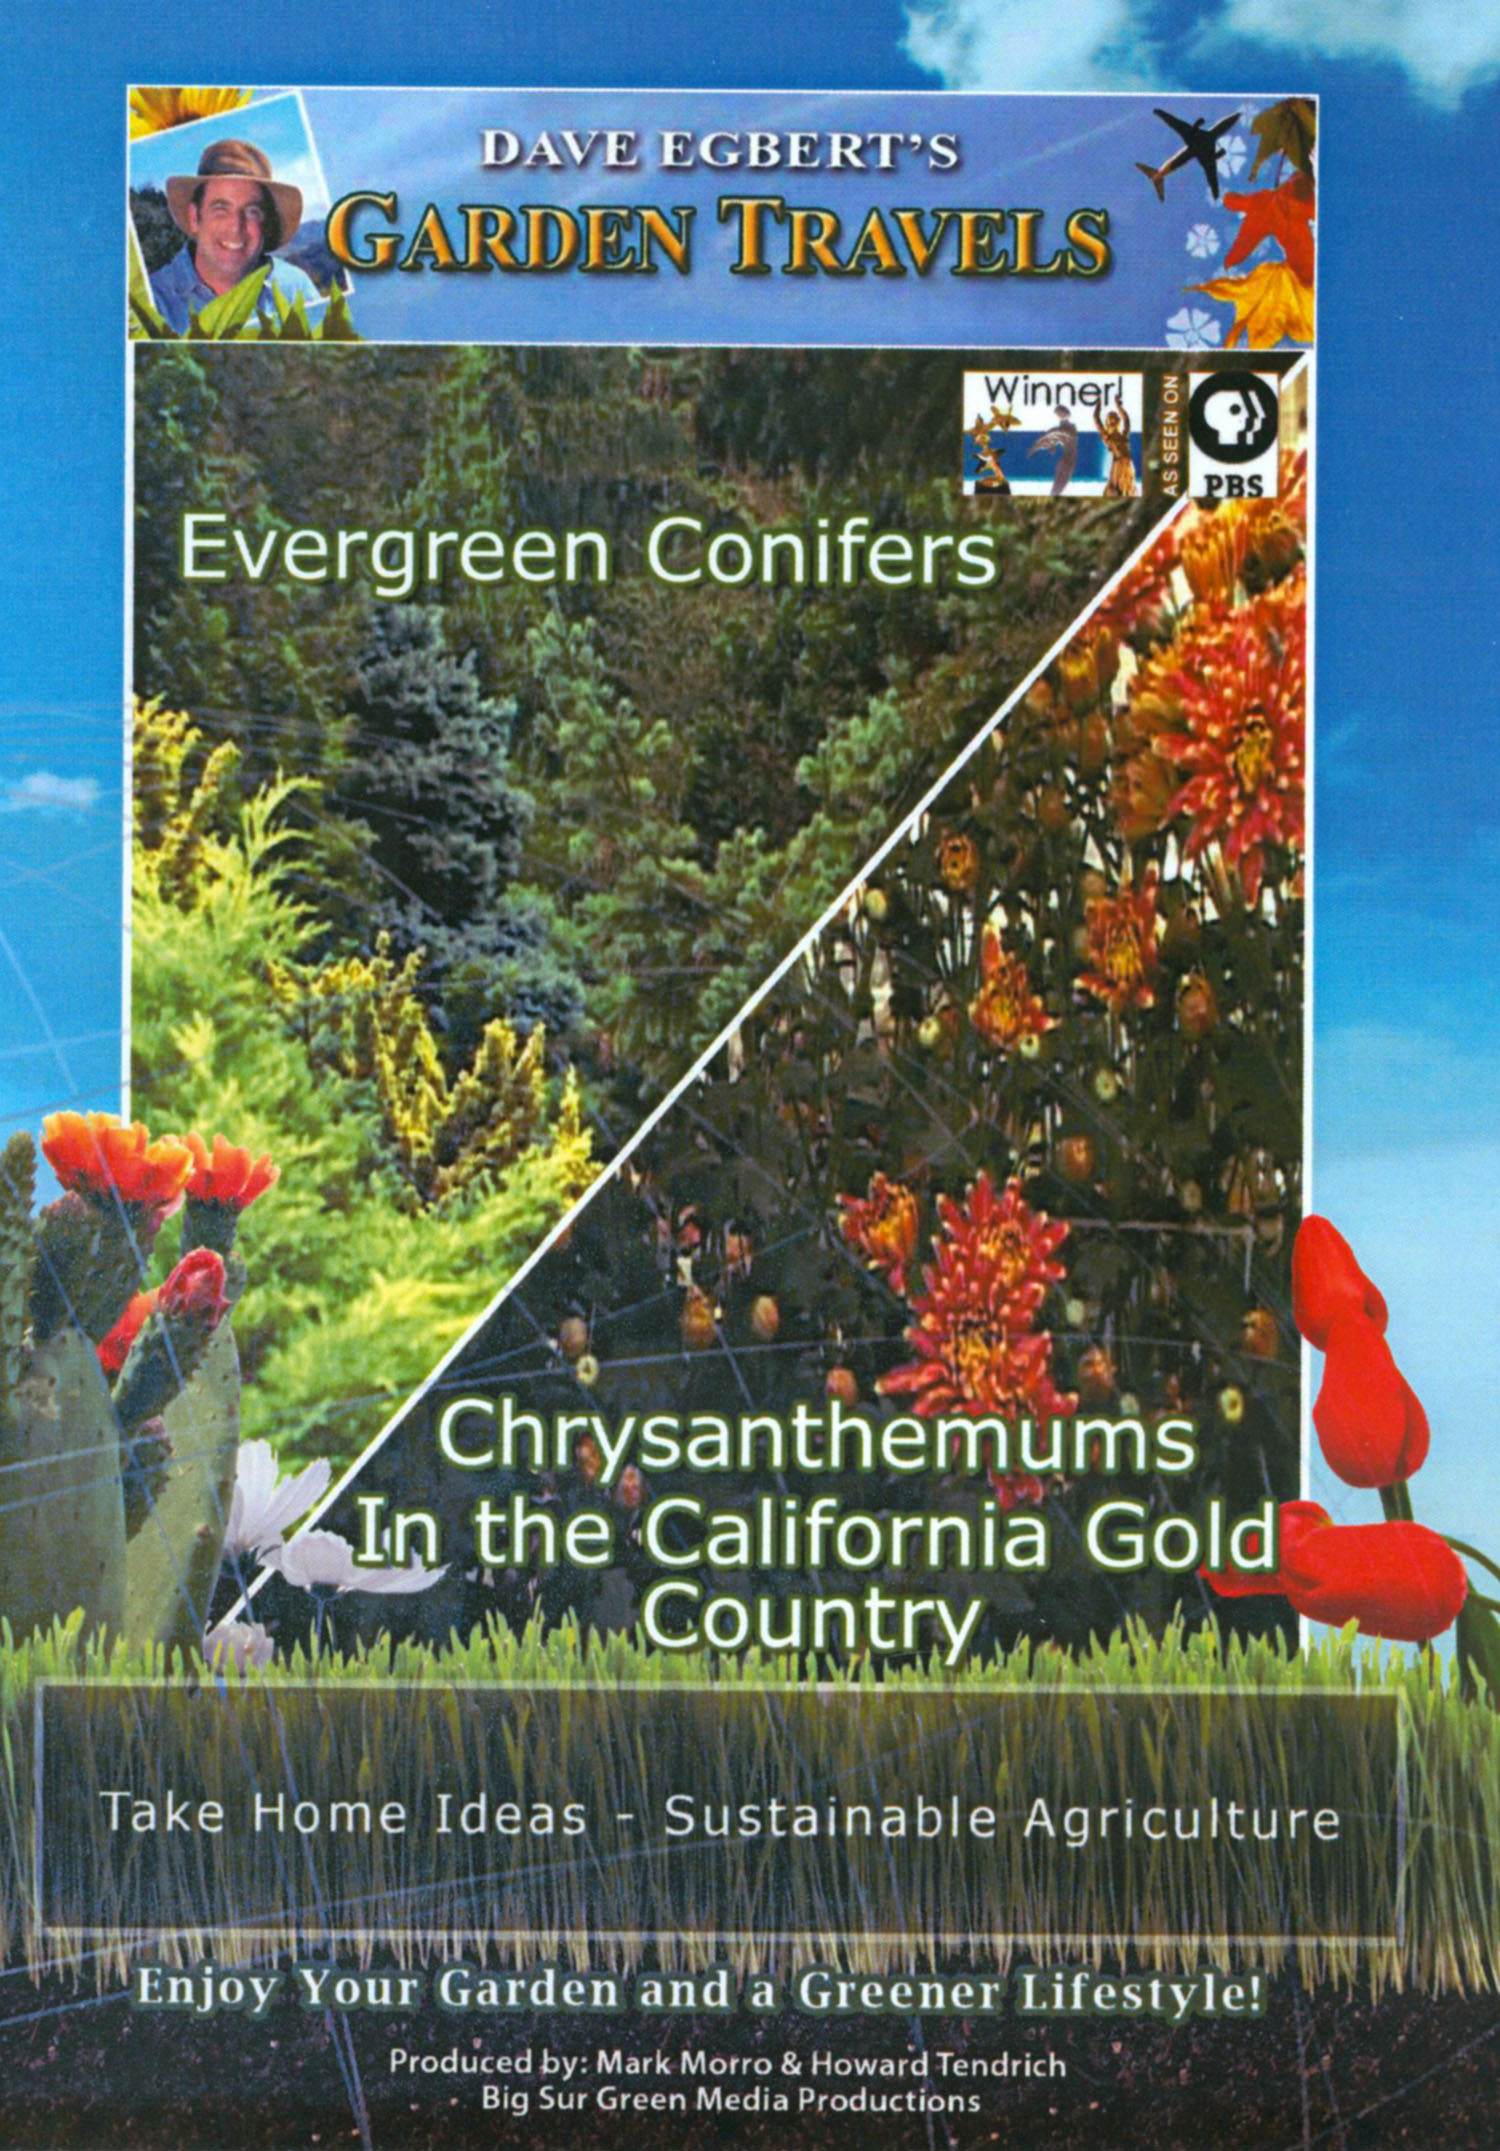 Dave Egbert's Garden Travels: Evergreen Conifers/Chrysanthemums in the California Gold Country